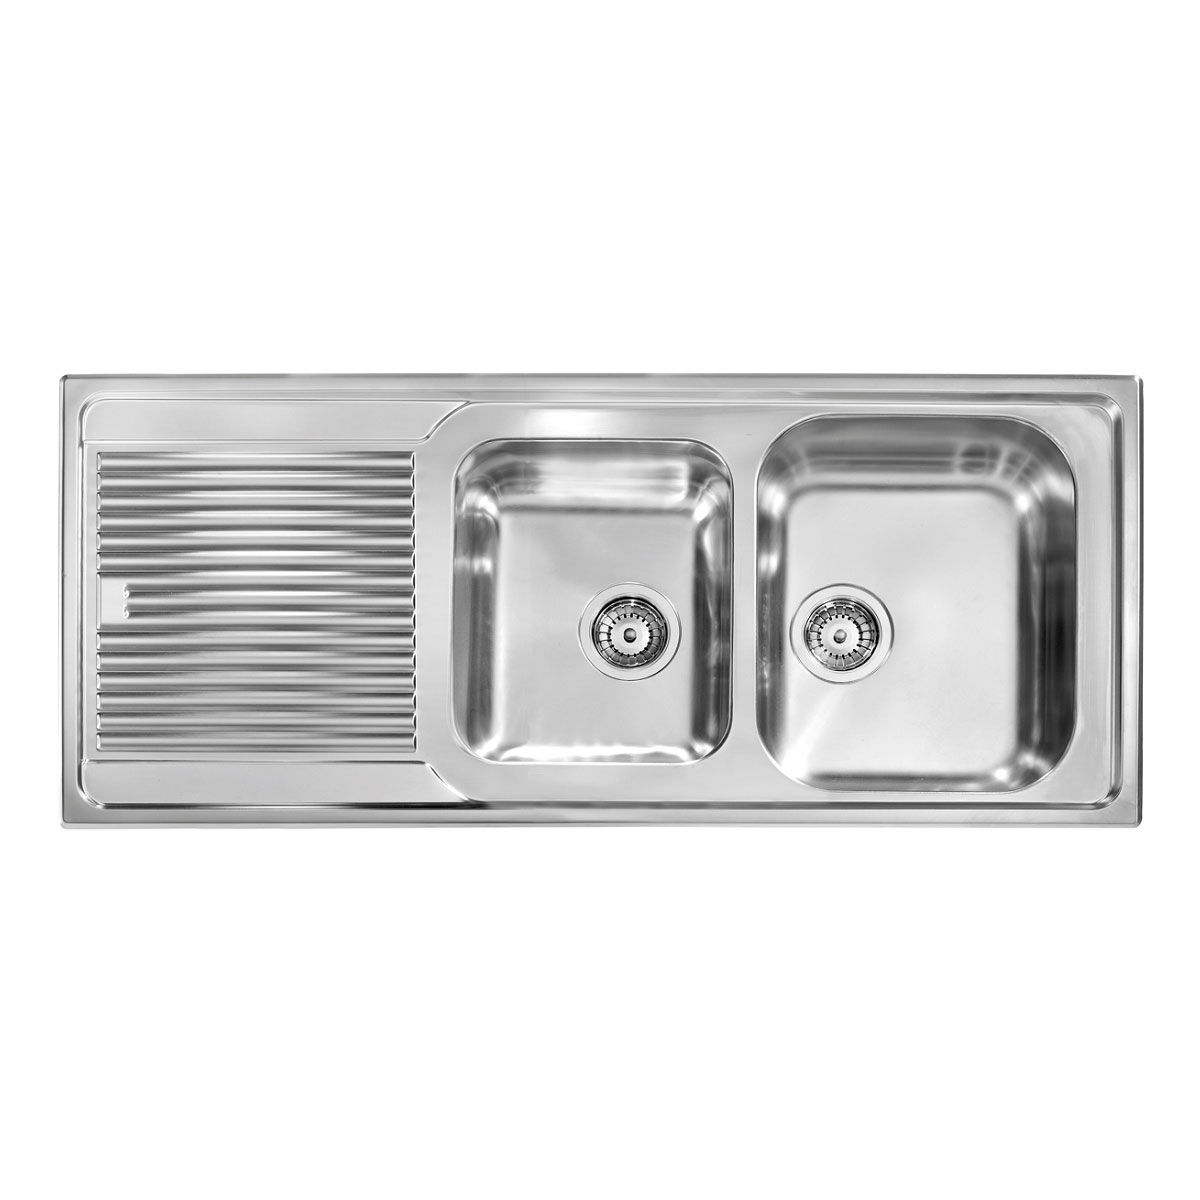 abey ze175rtw zenith sink pack - Abey Kitchen Sinks